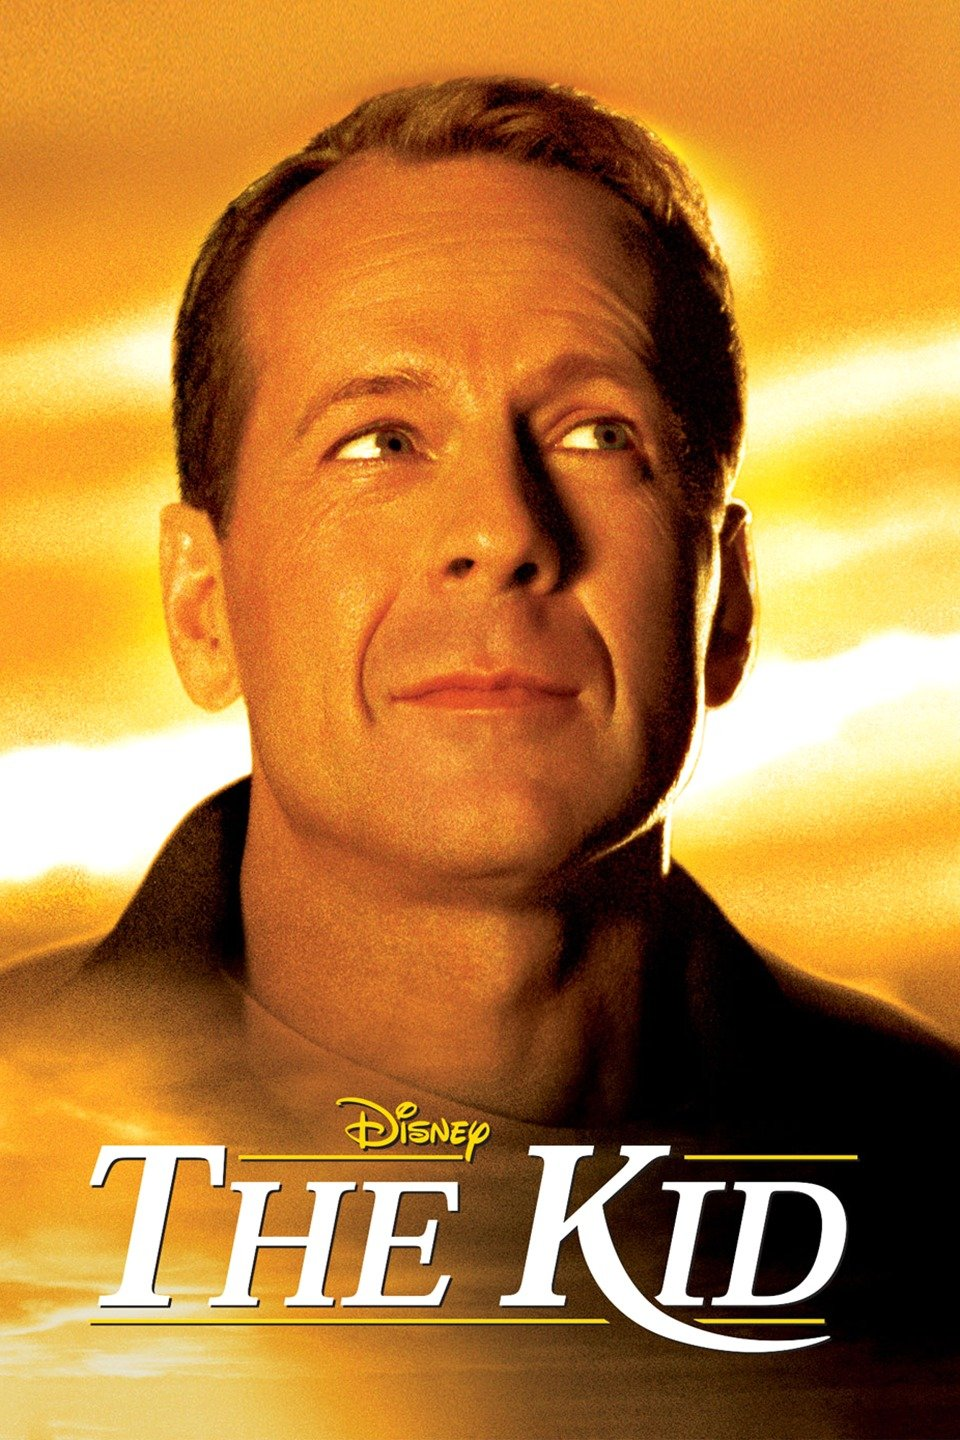 Disney's The Kid (2000)